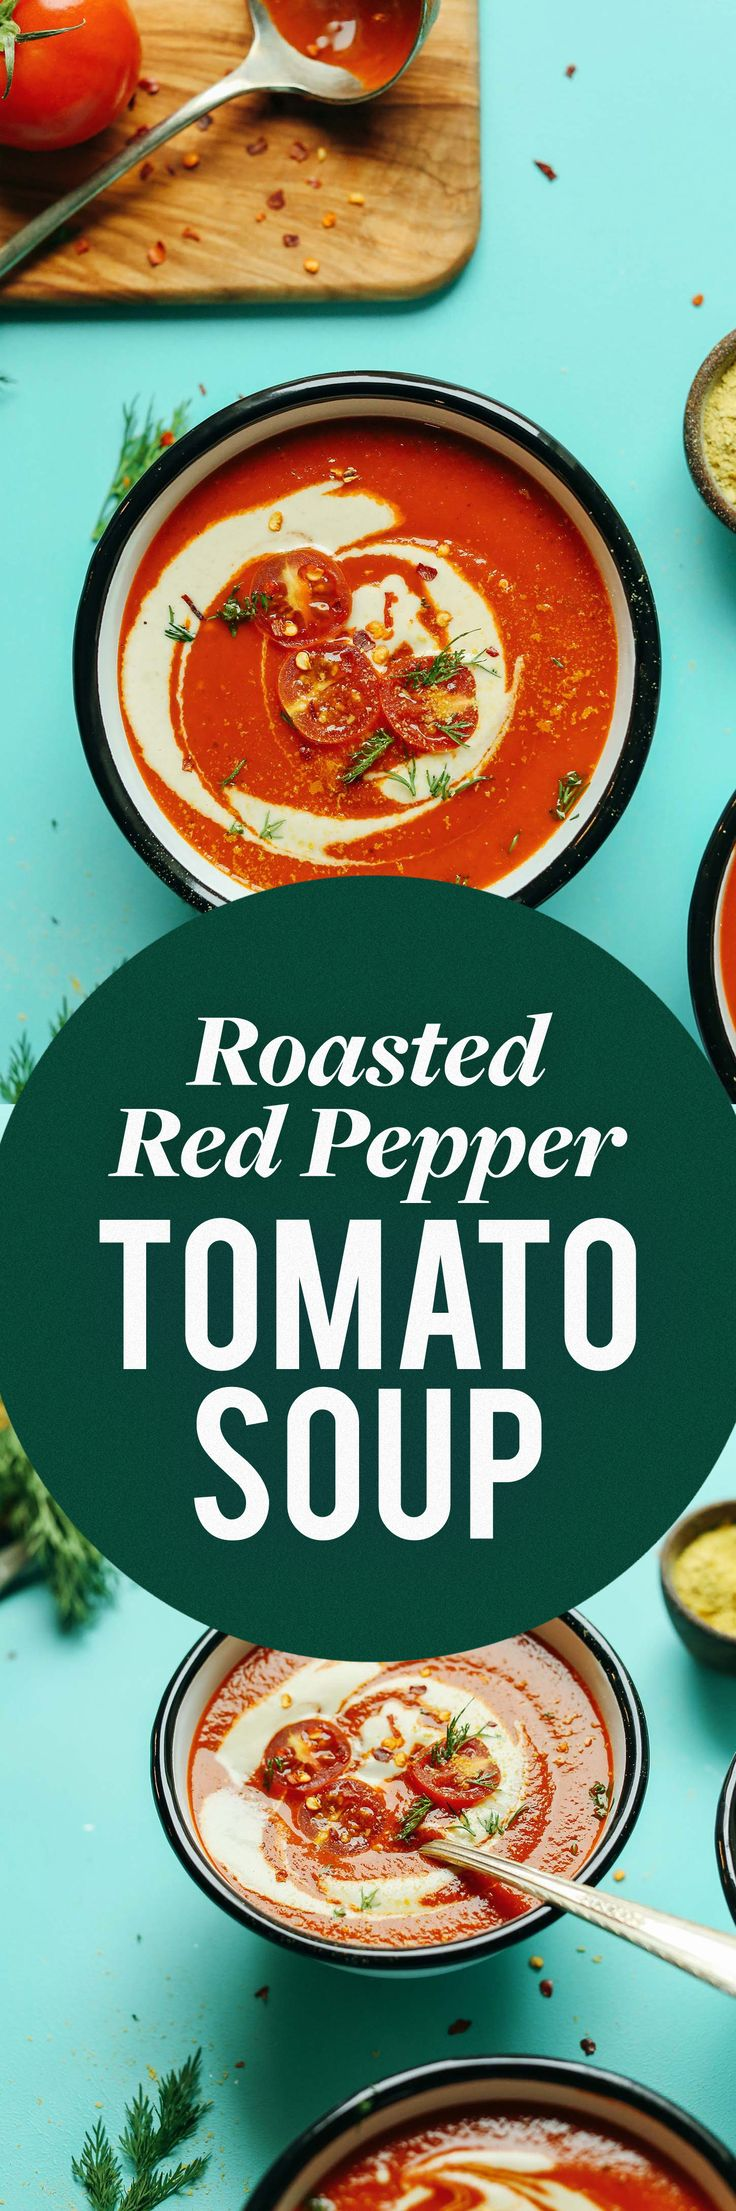 CREAMY Roasted Red Pepper Tomato Soup! Simple ingredients, BIG flavor!